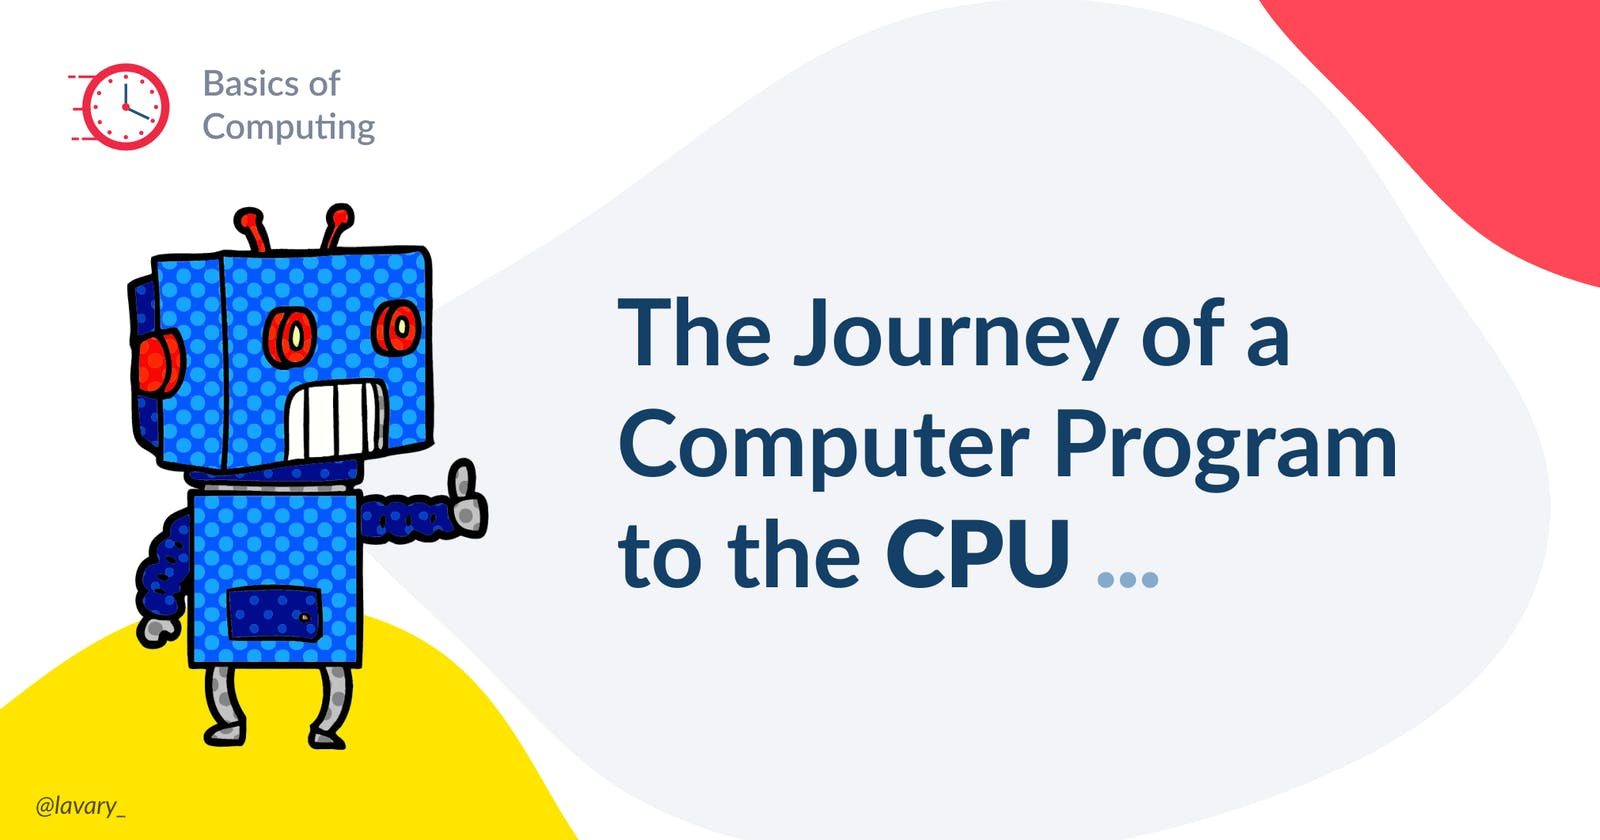 The Journey of a computer program to the CPU